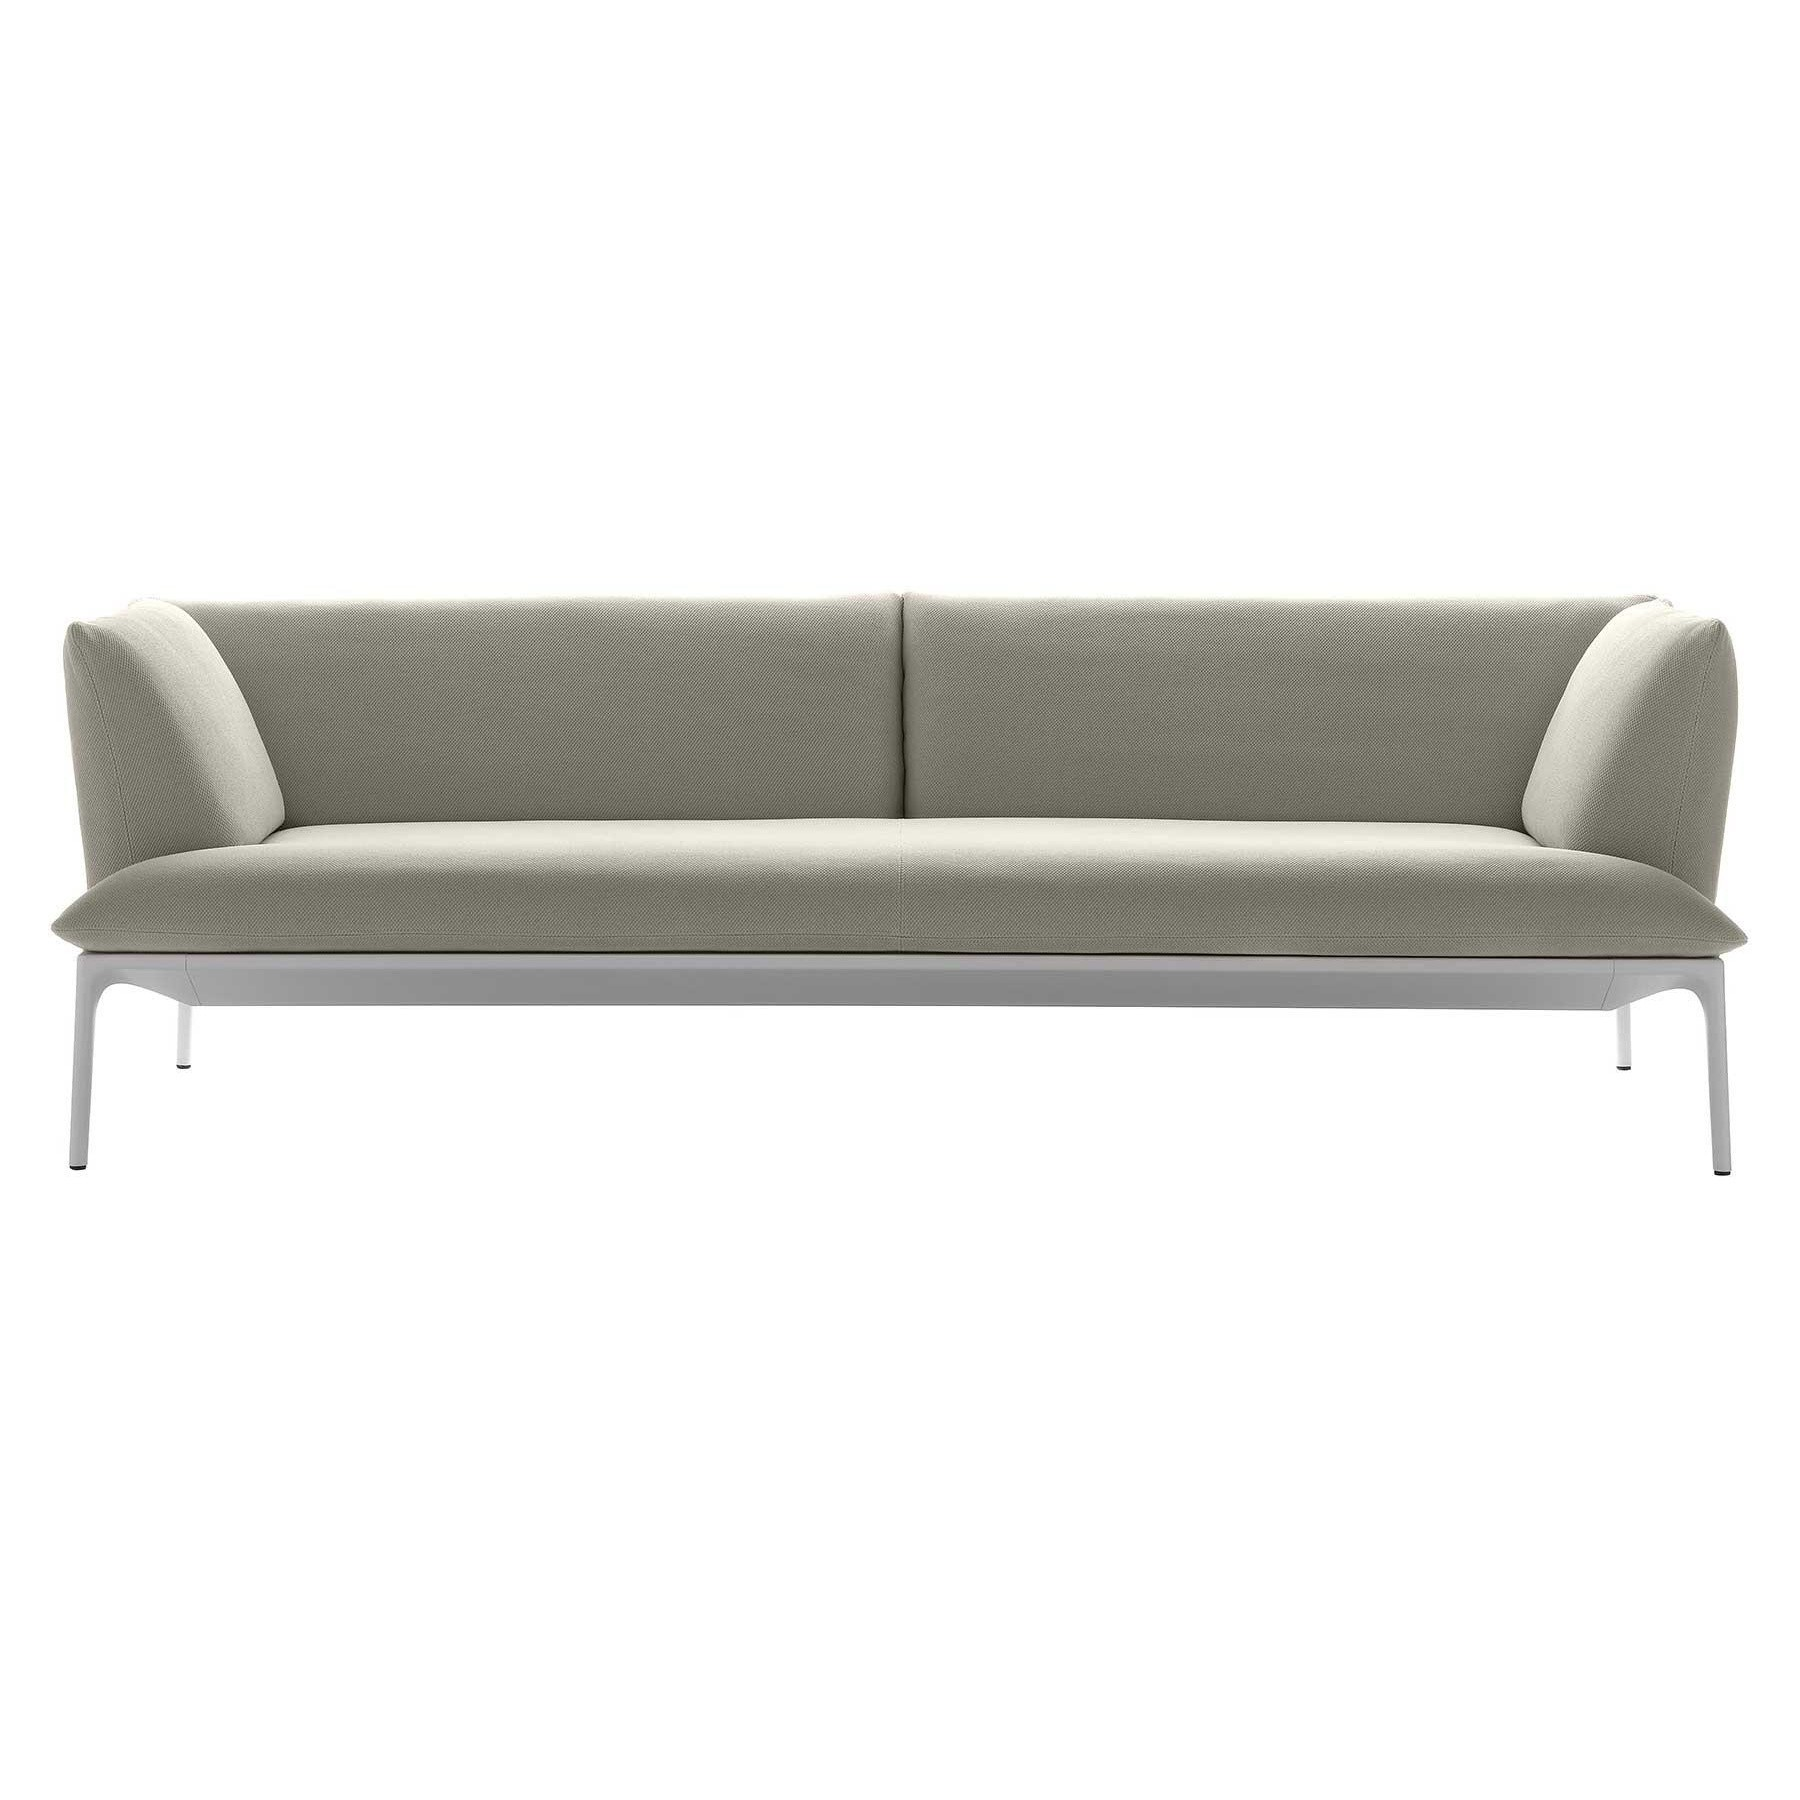 mdf italia yale s4 sofa 4 seater ambientedirect rh ambientedirect com